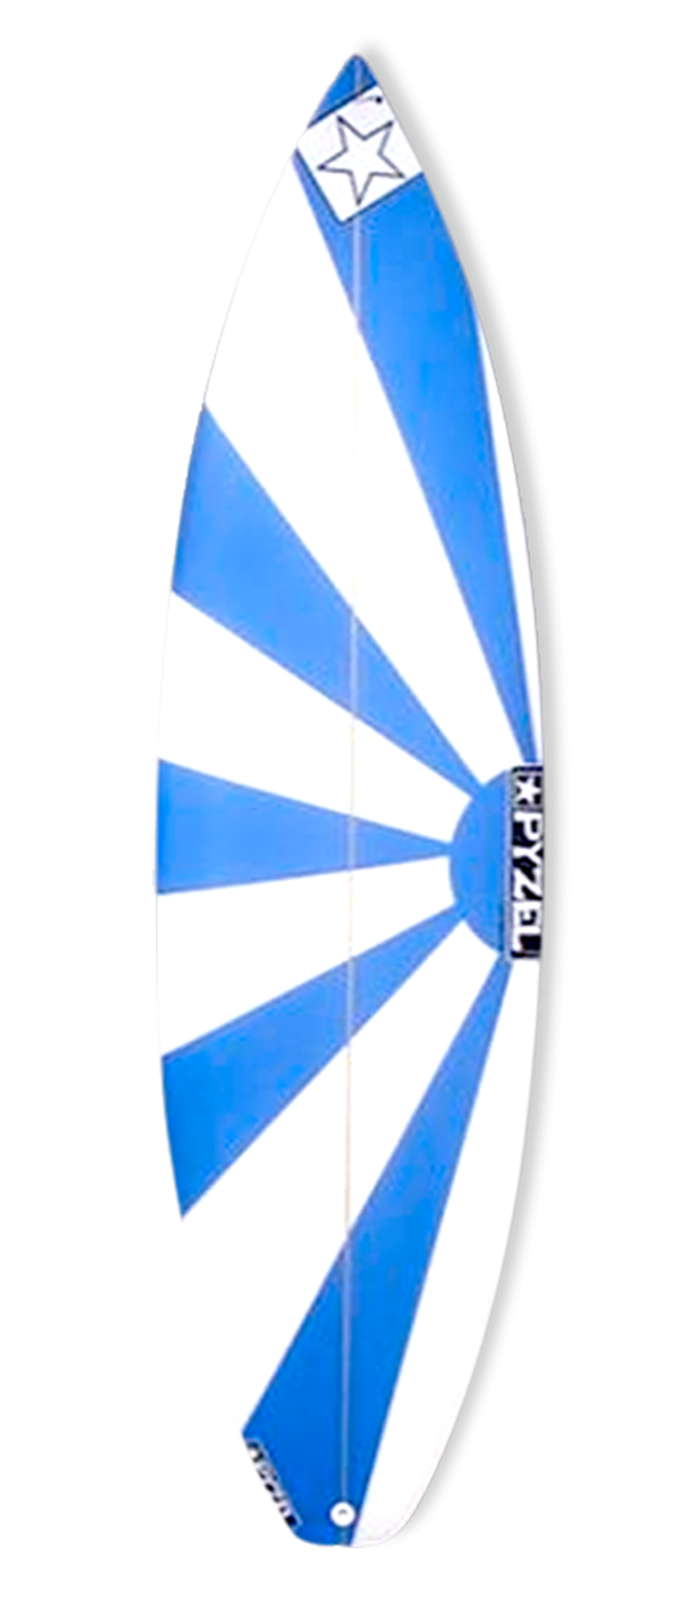 INDIE GROM surfboard model deck